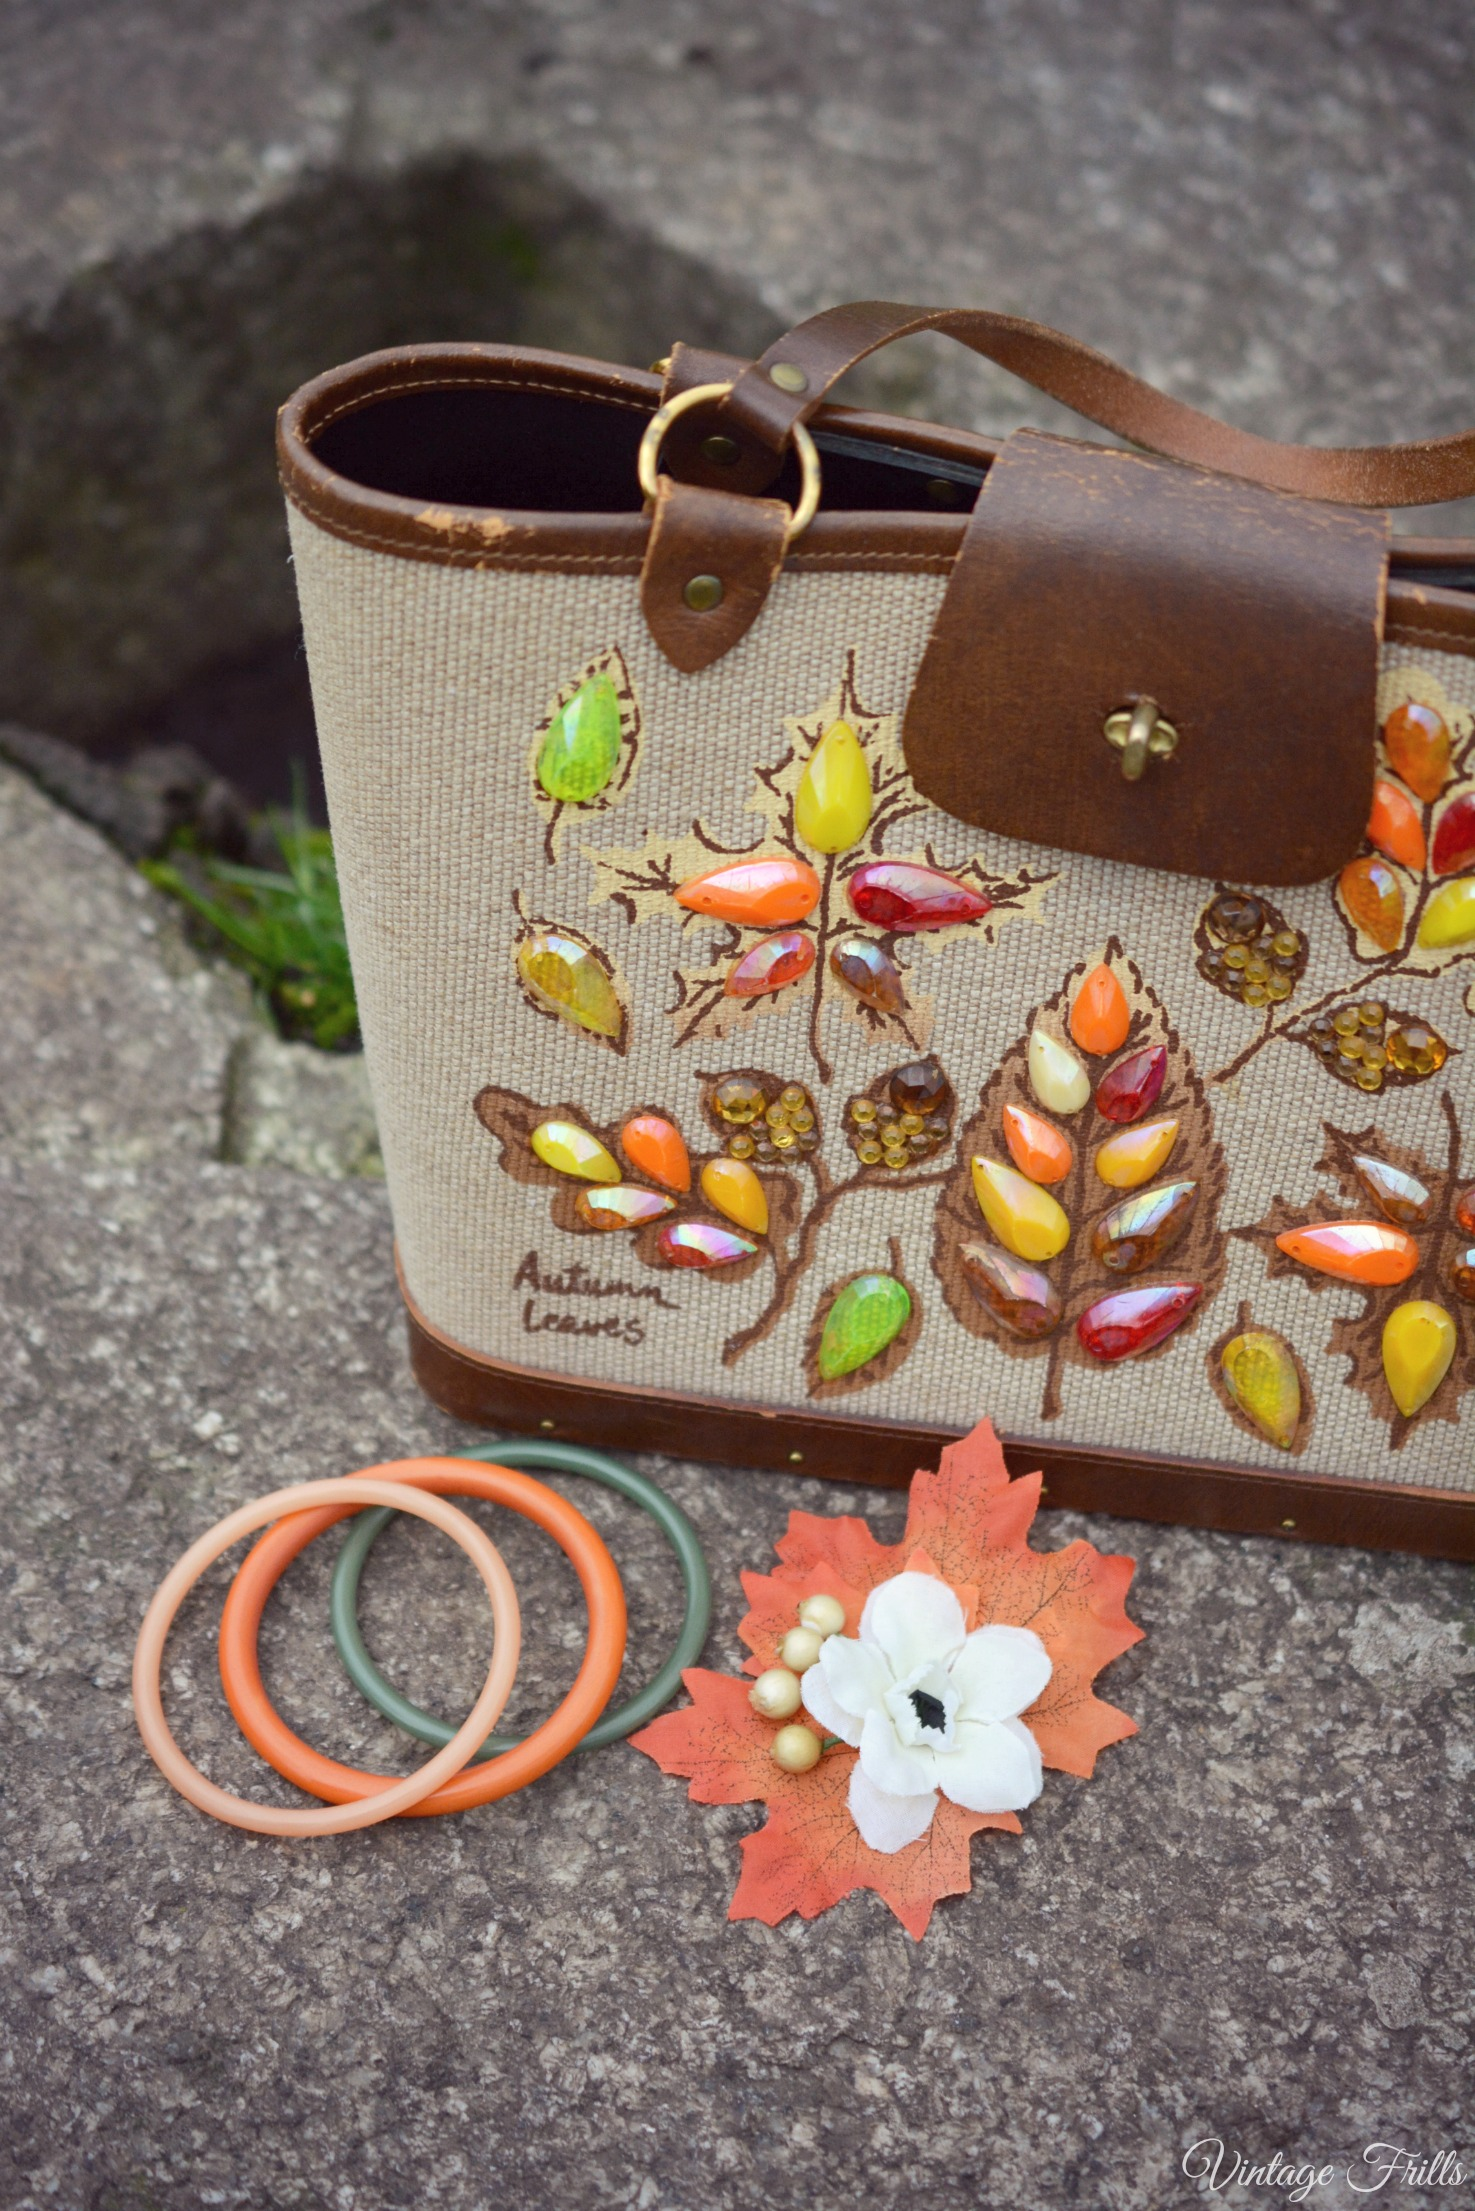 Autumn Leaves Enid Collins Handbag